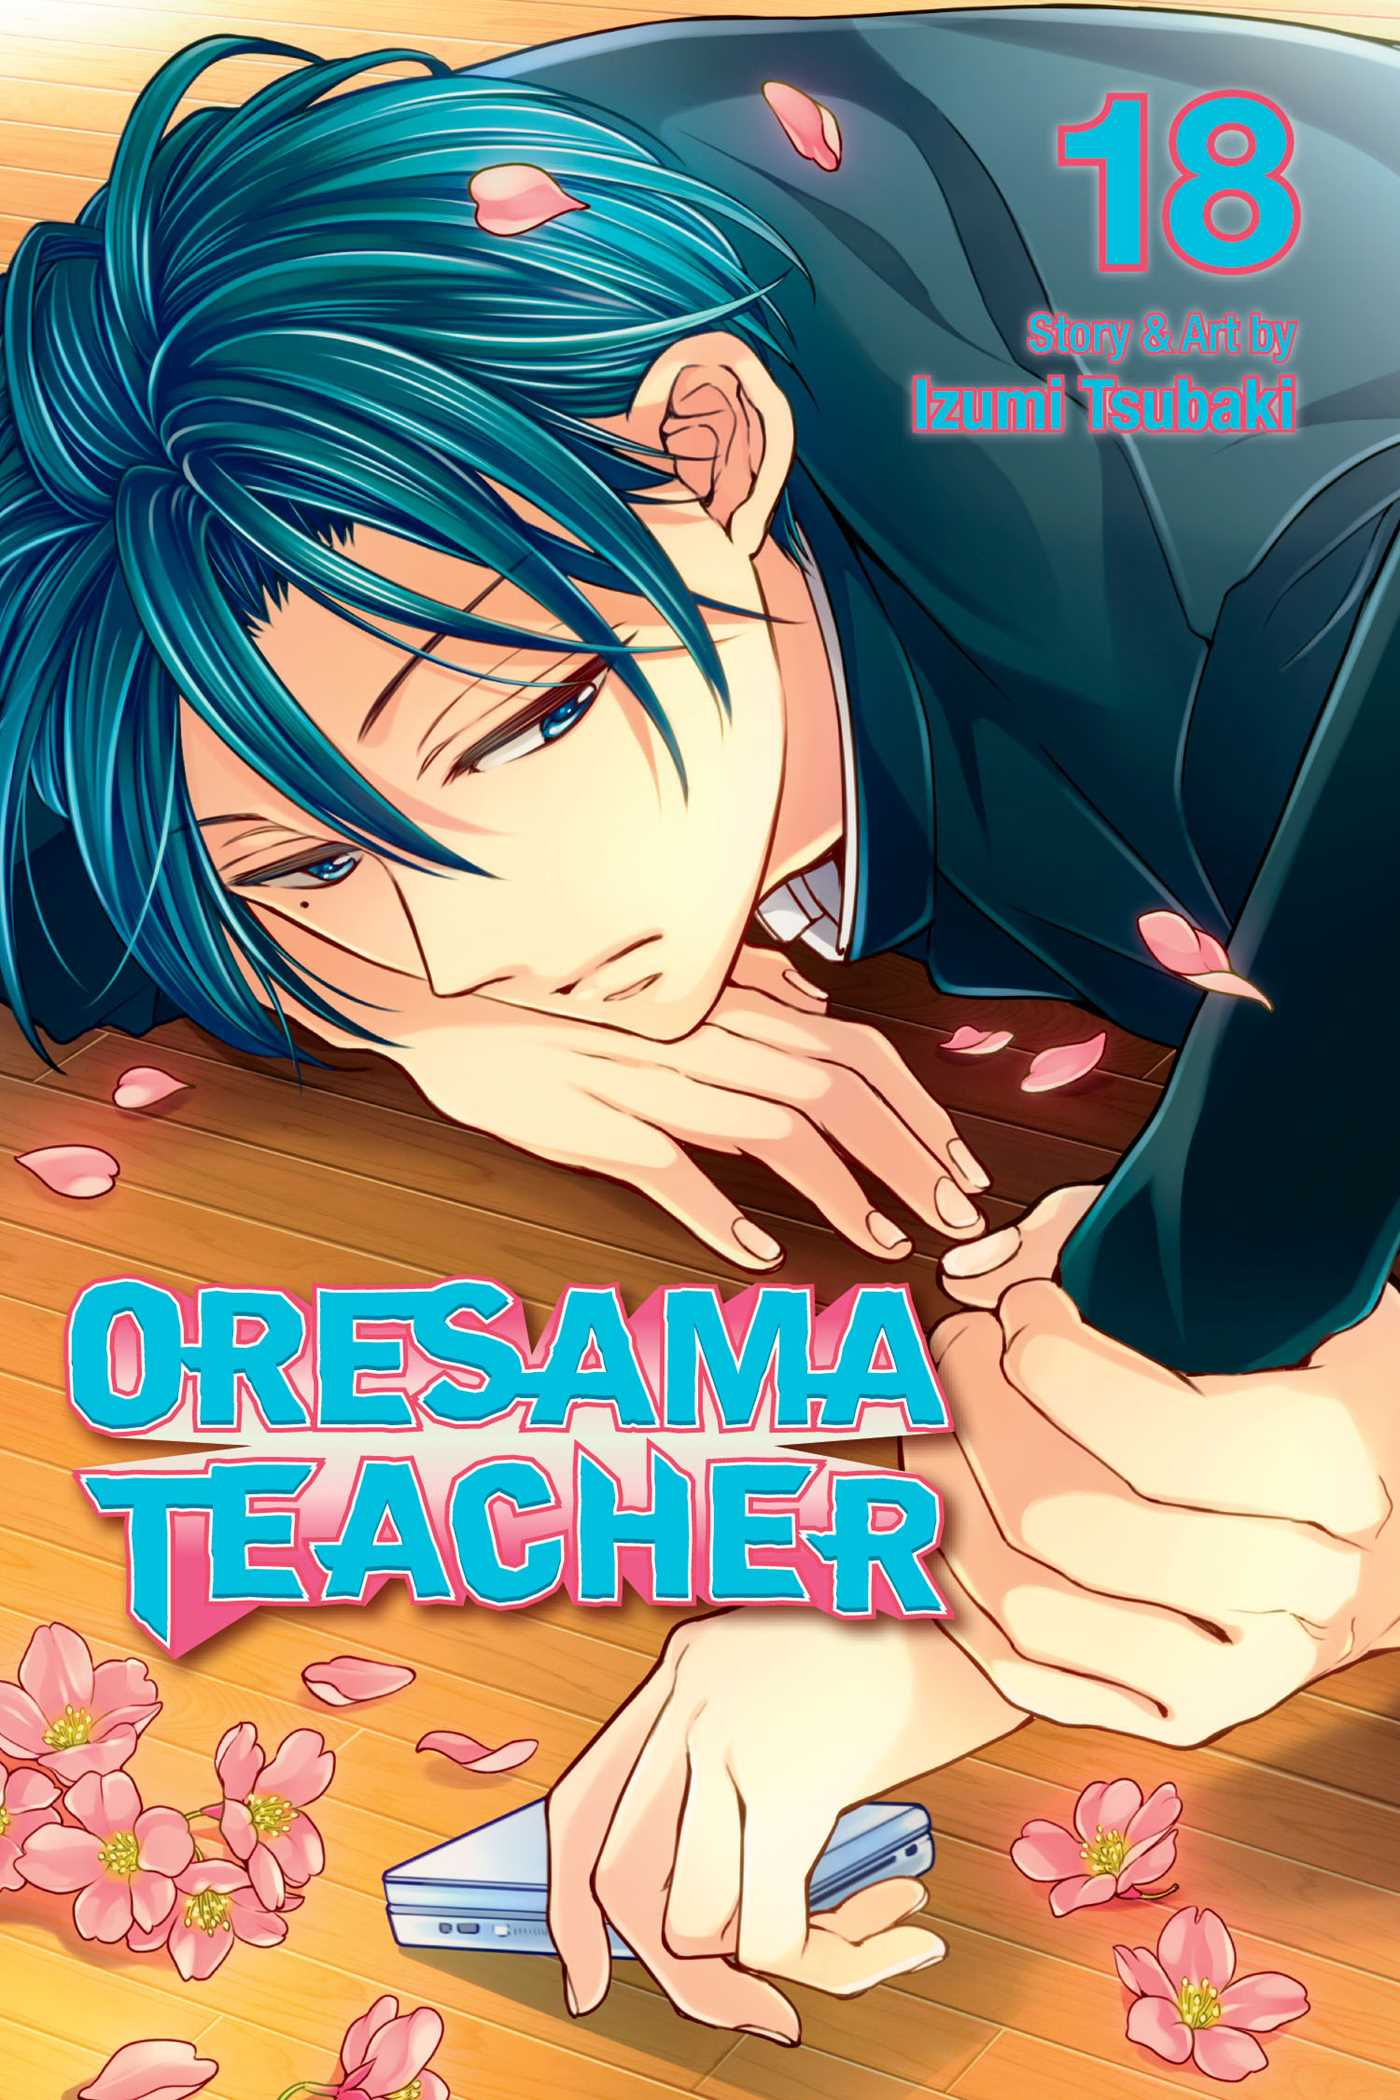 Oresama-teacher-vol-18-9781421577739_hr